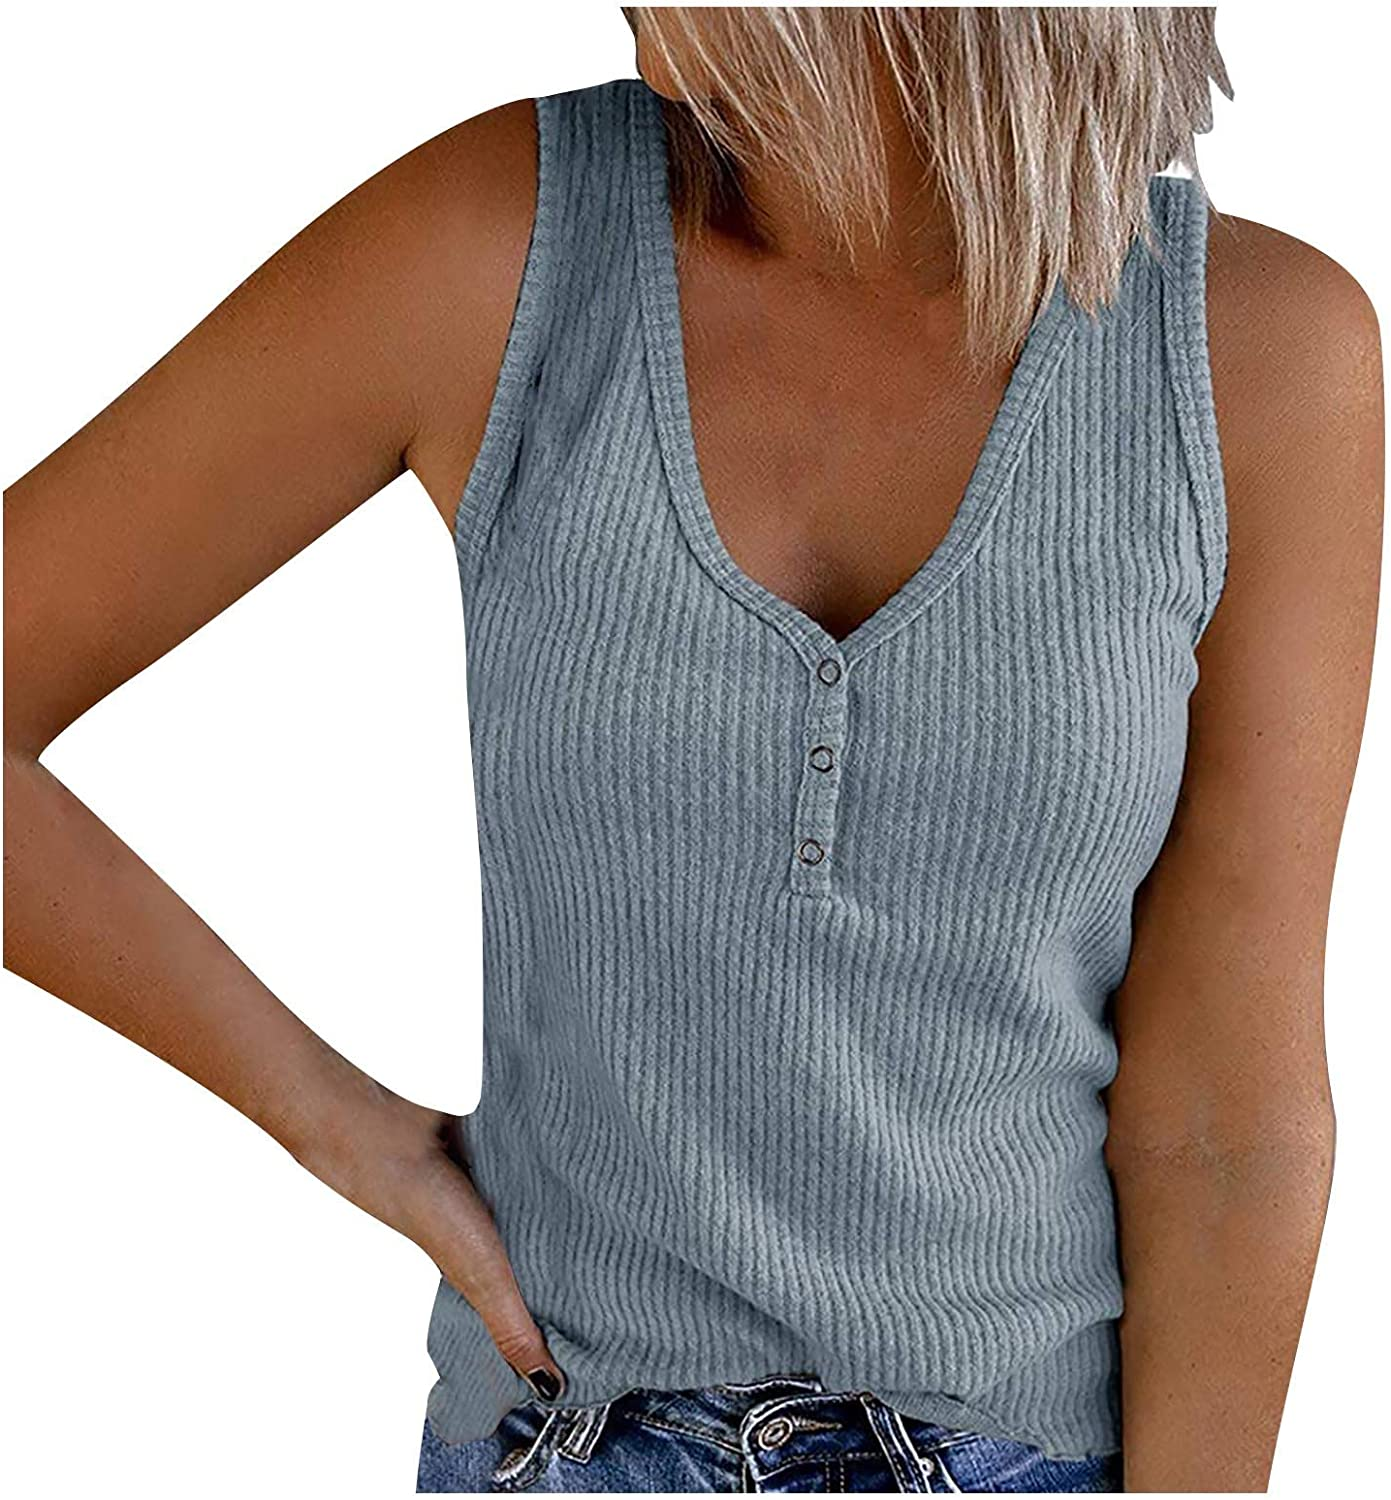 Gerichy Tank Tops for Women, Womens Casual Summer Sleeveless Plus Size Loose Tank Tees Shirts Blouses Tunics Tops